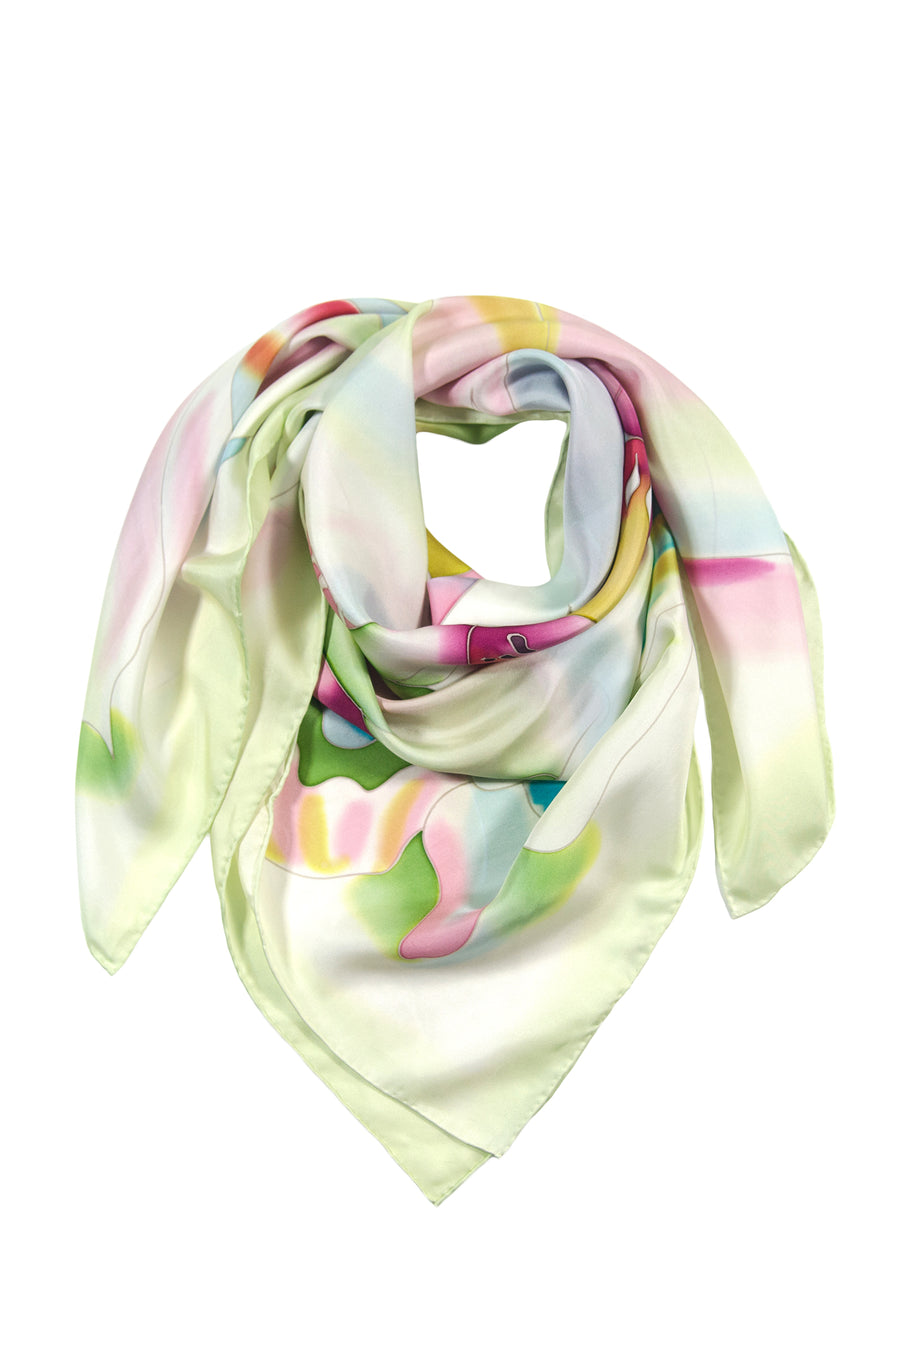 Floral Joy - Women's Silk Hand Painted Square Scarf - TexereSilk